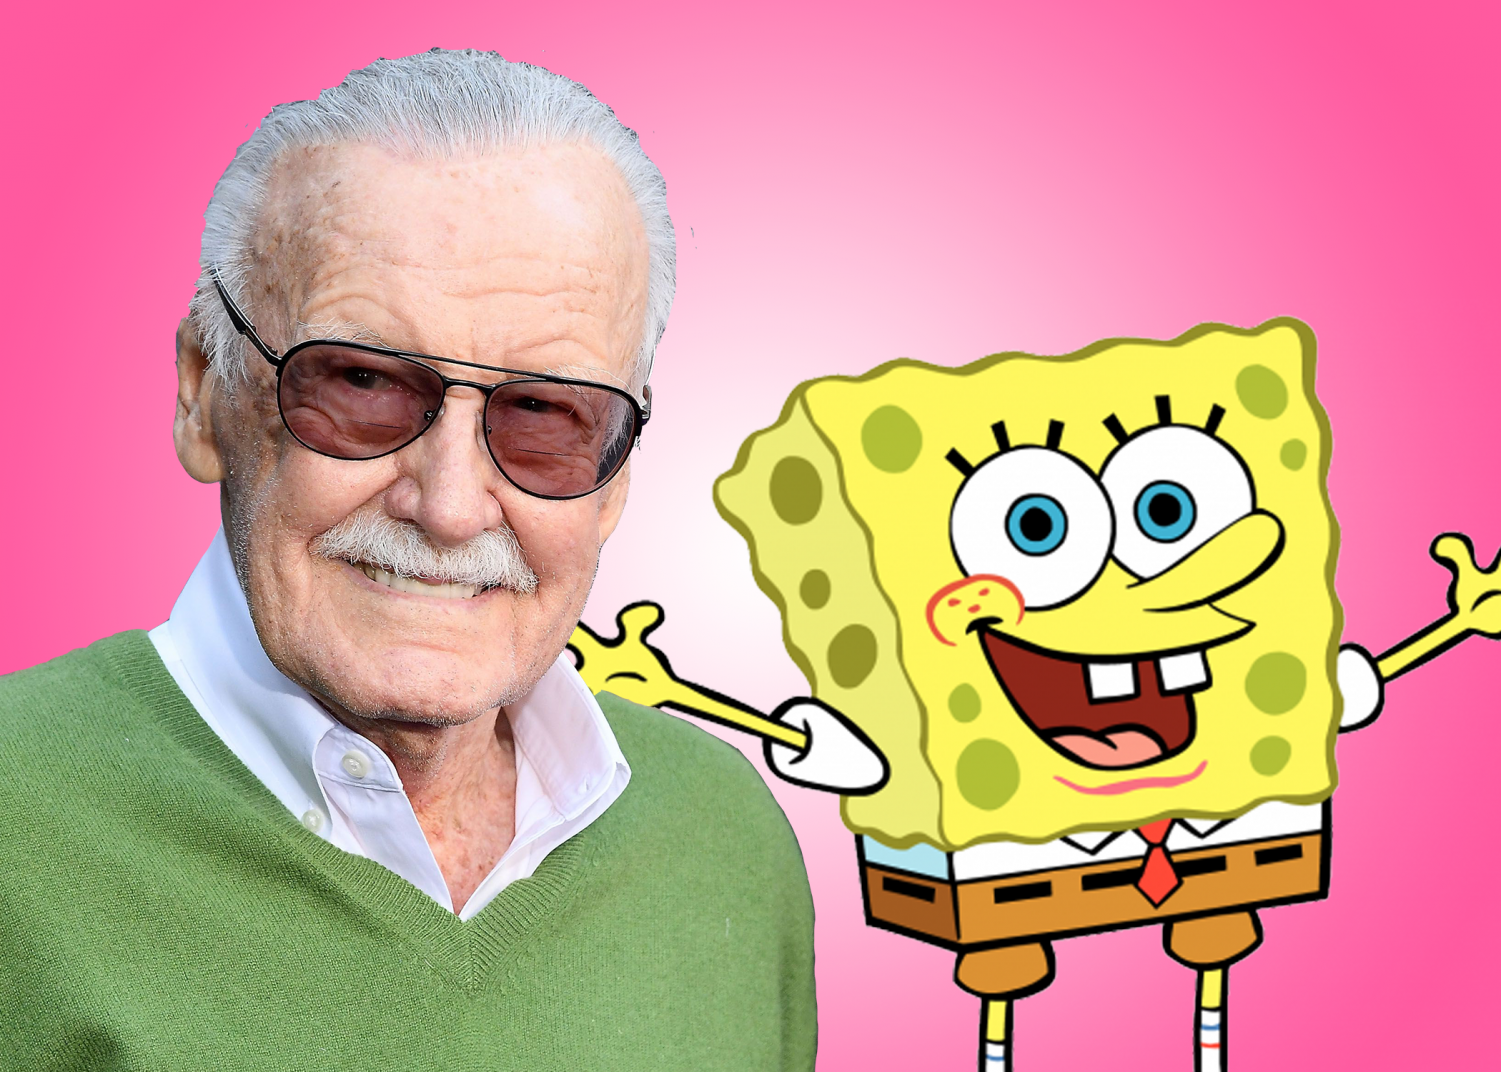 Stan Lee next to Steven Hillenburg's classic character Spongebob Squarepants.